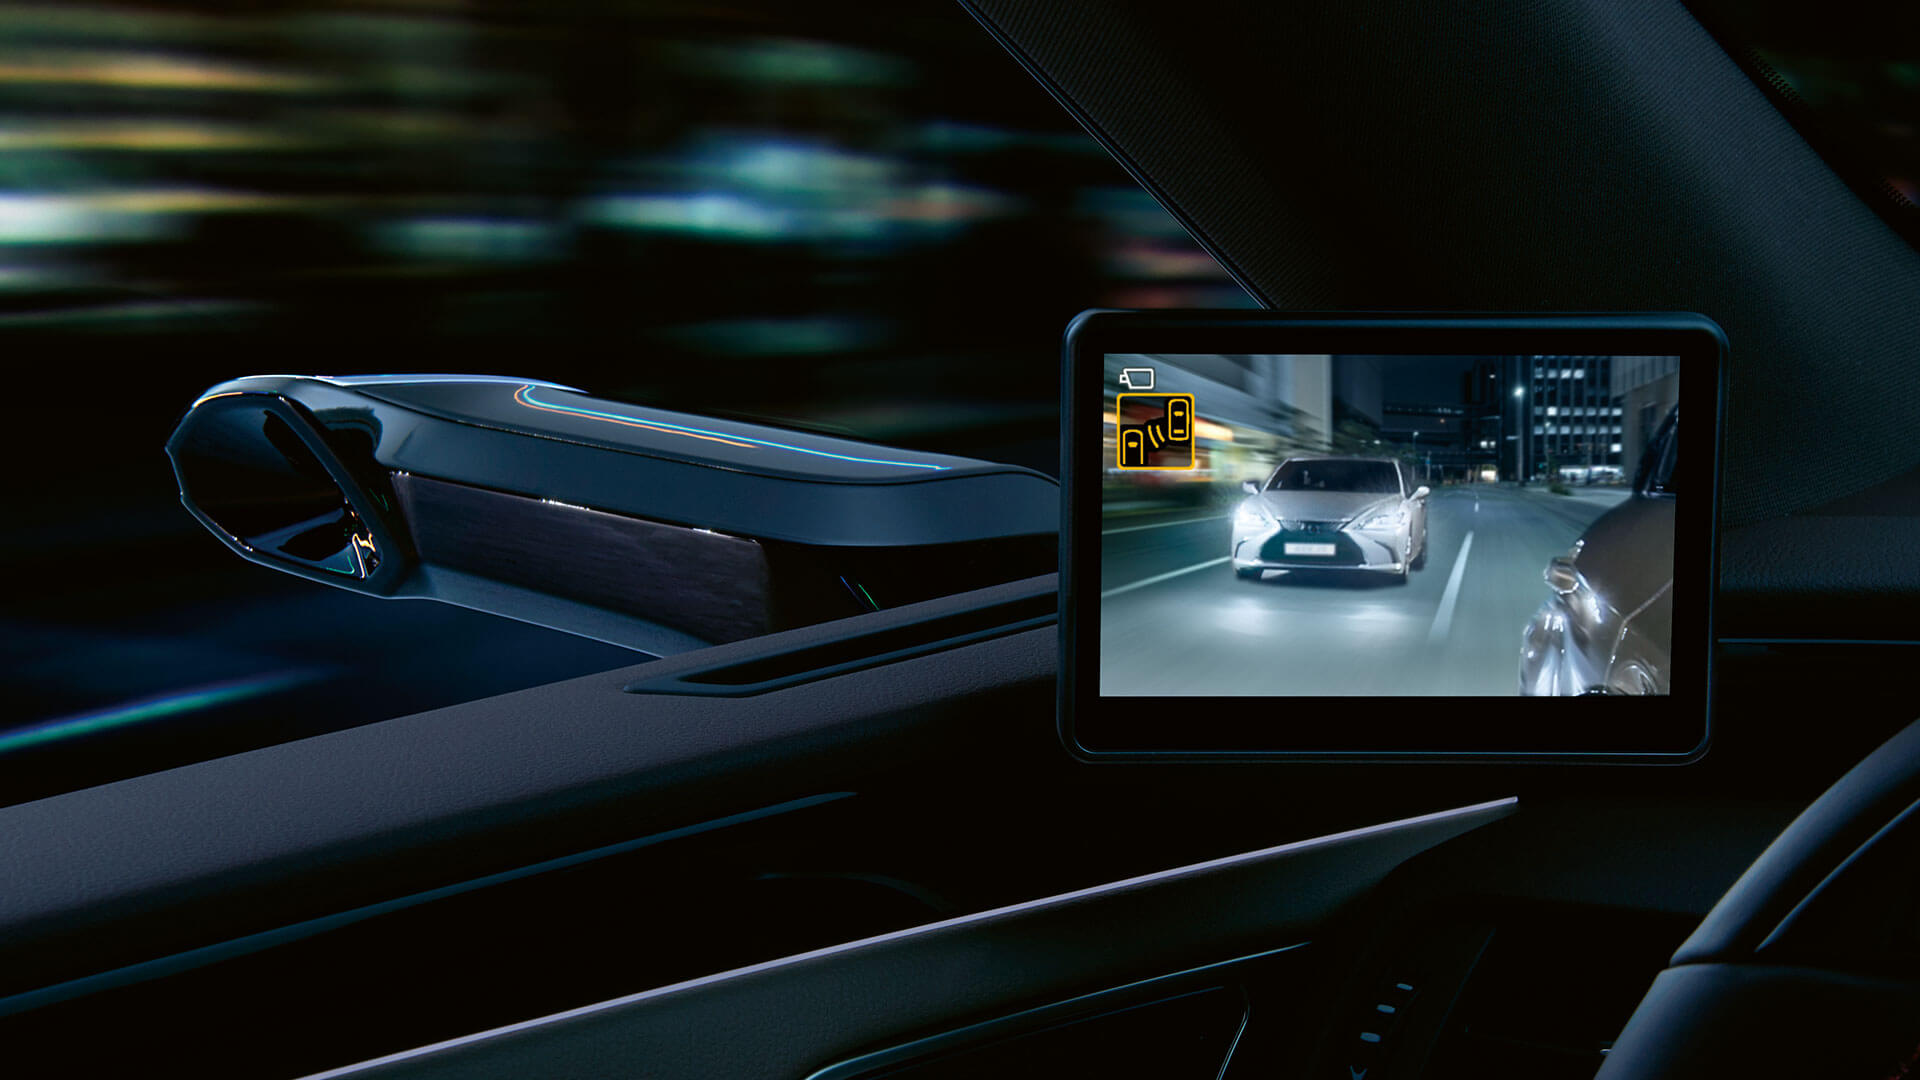 1 2020 lexus es gallery digital mirror 03